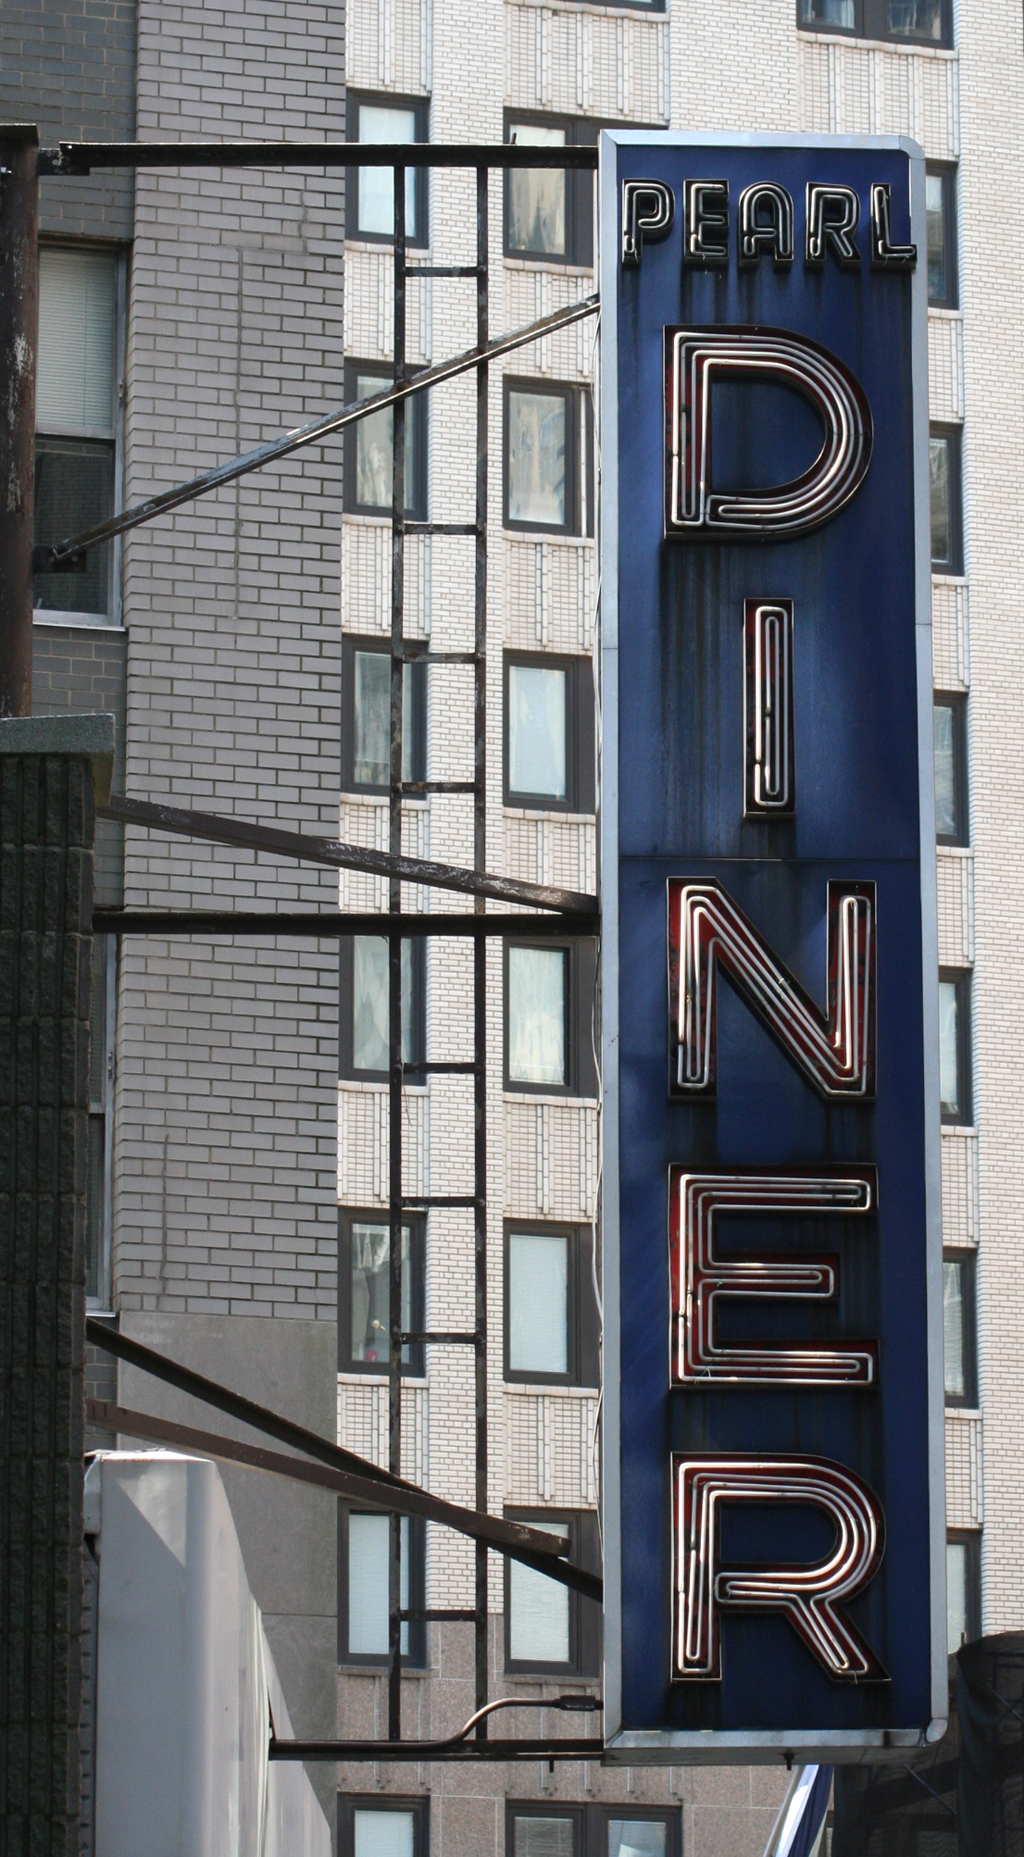 Neon sign for Pearl Diner (Manhattan). Photograph by Paul Shaw 2006.